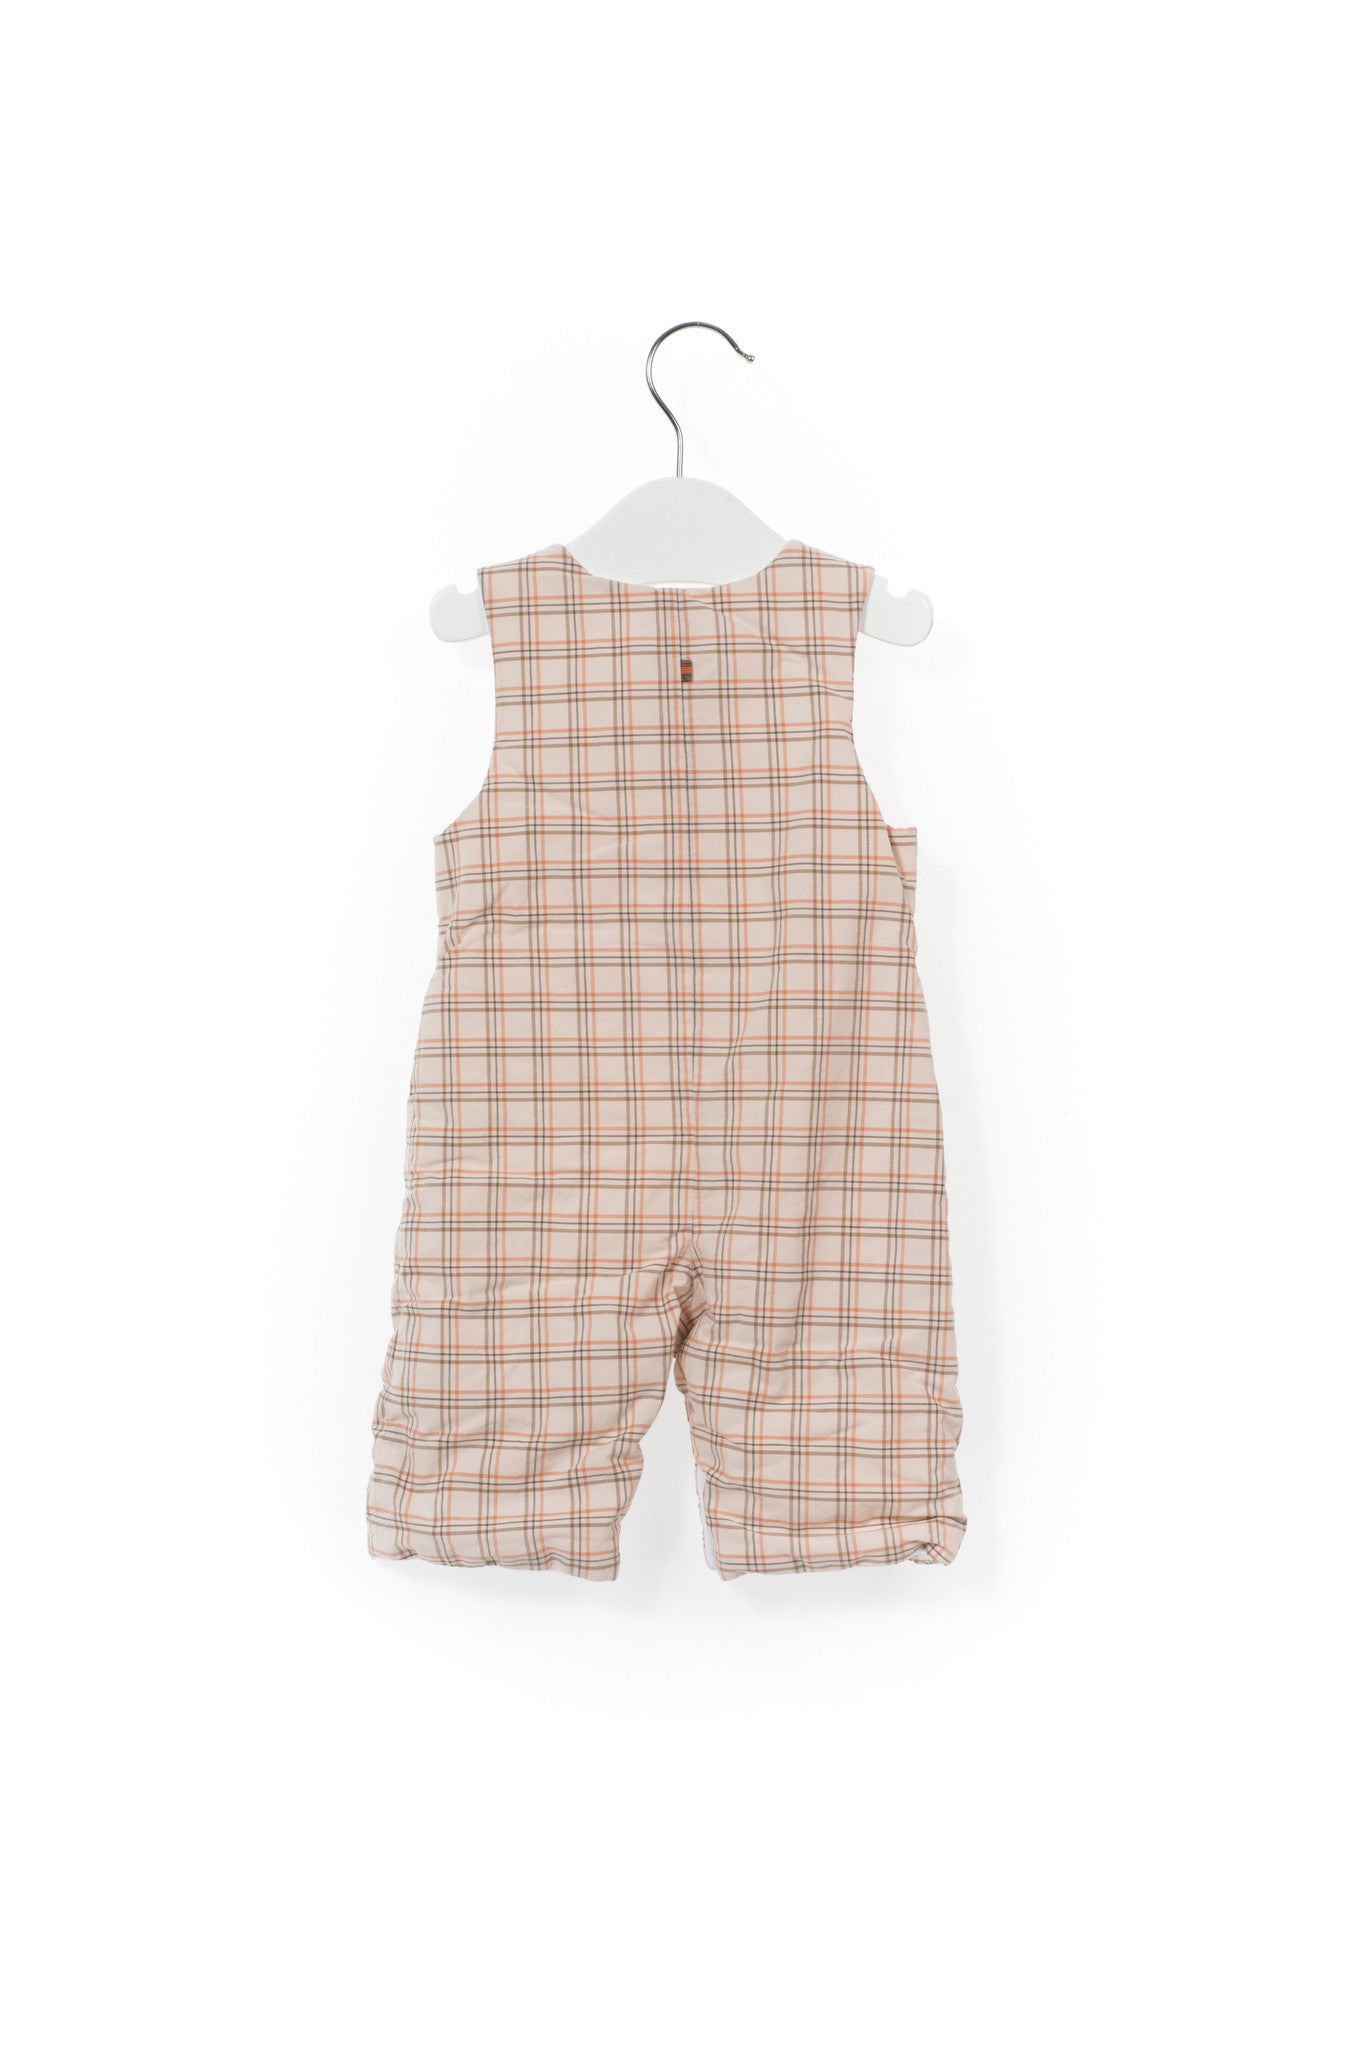 Romper 3-6M, Jacadi at Retykle - Online Baby & Kids Clothing Up to 90% Off